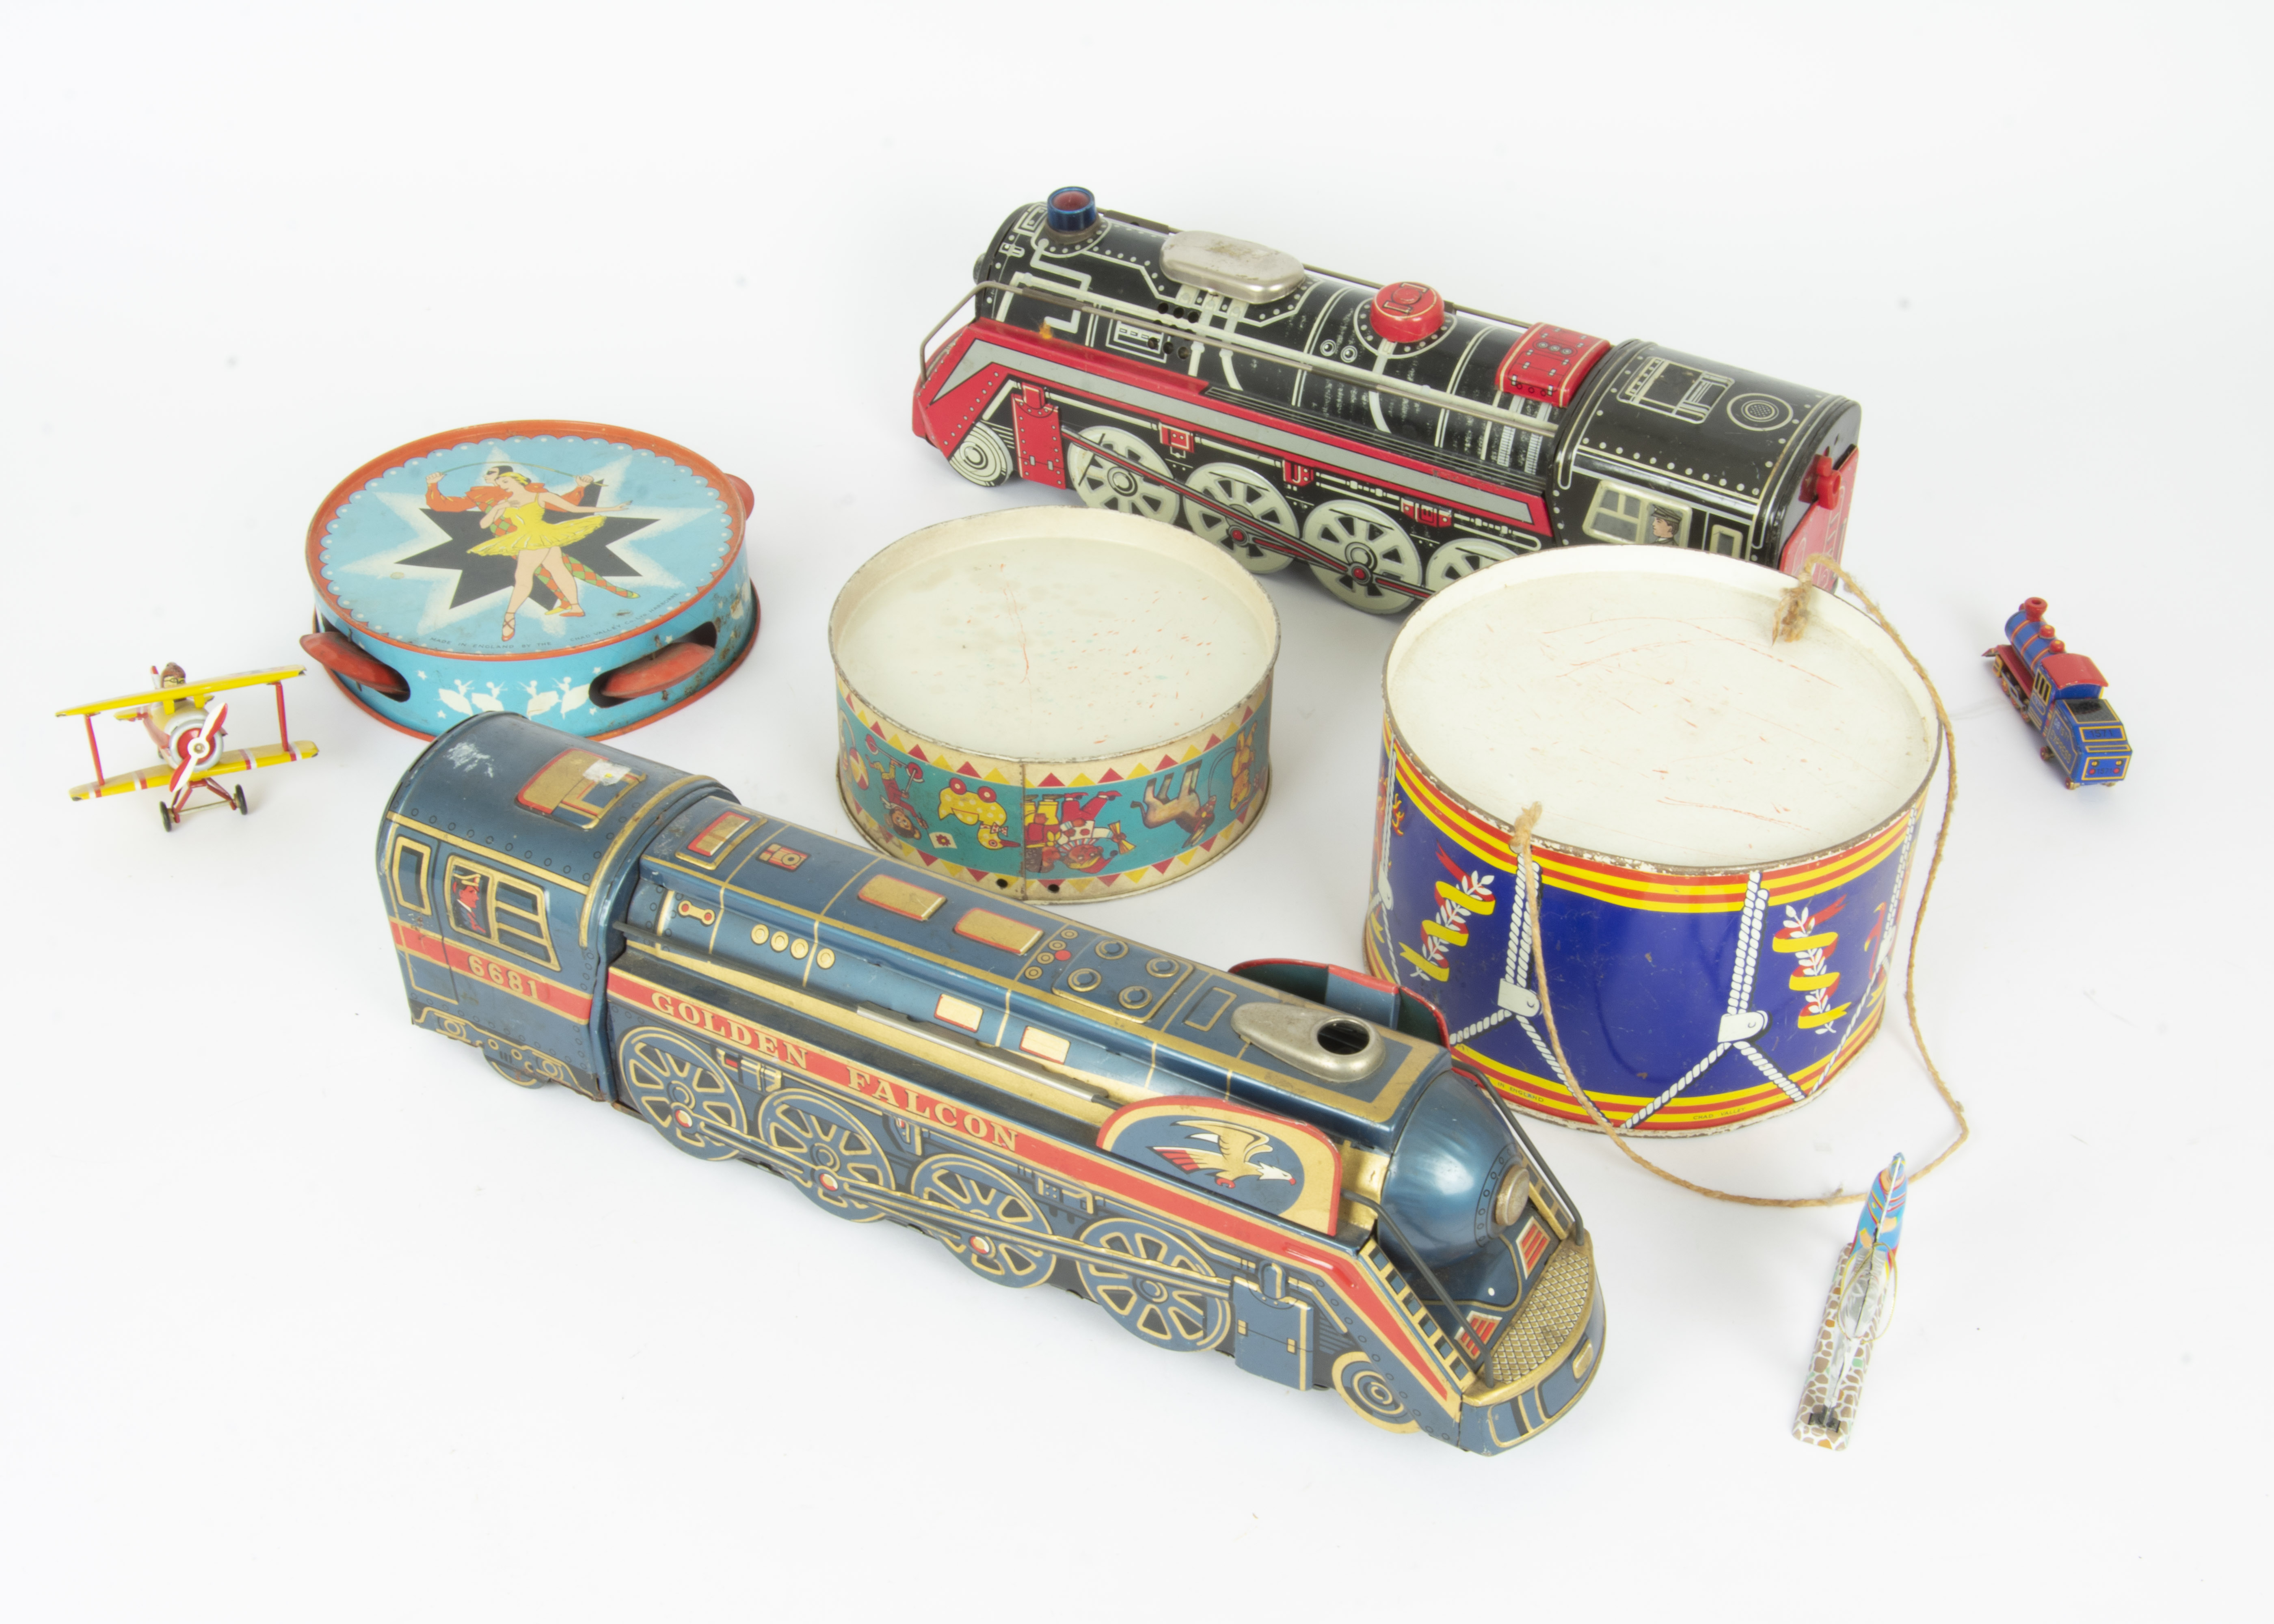 Lot 273 - Various Tin Toys, Kovap Road Roller, Leichenwagen 1924 and Chinese Pop Pop boat, all in original